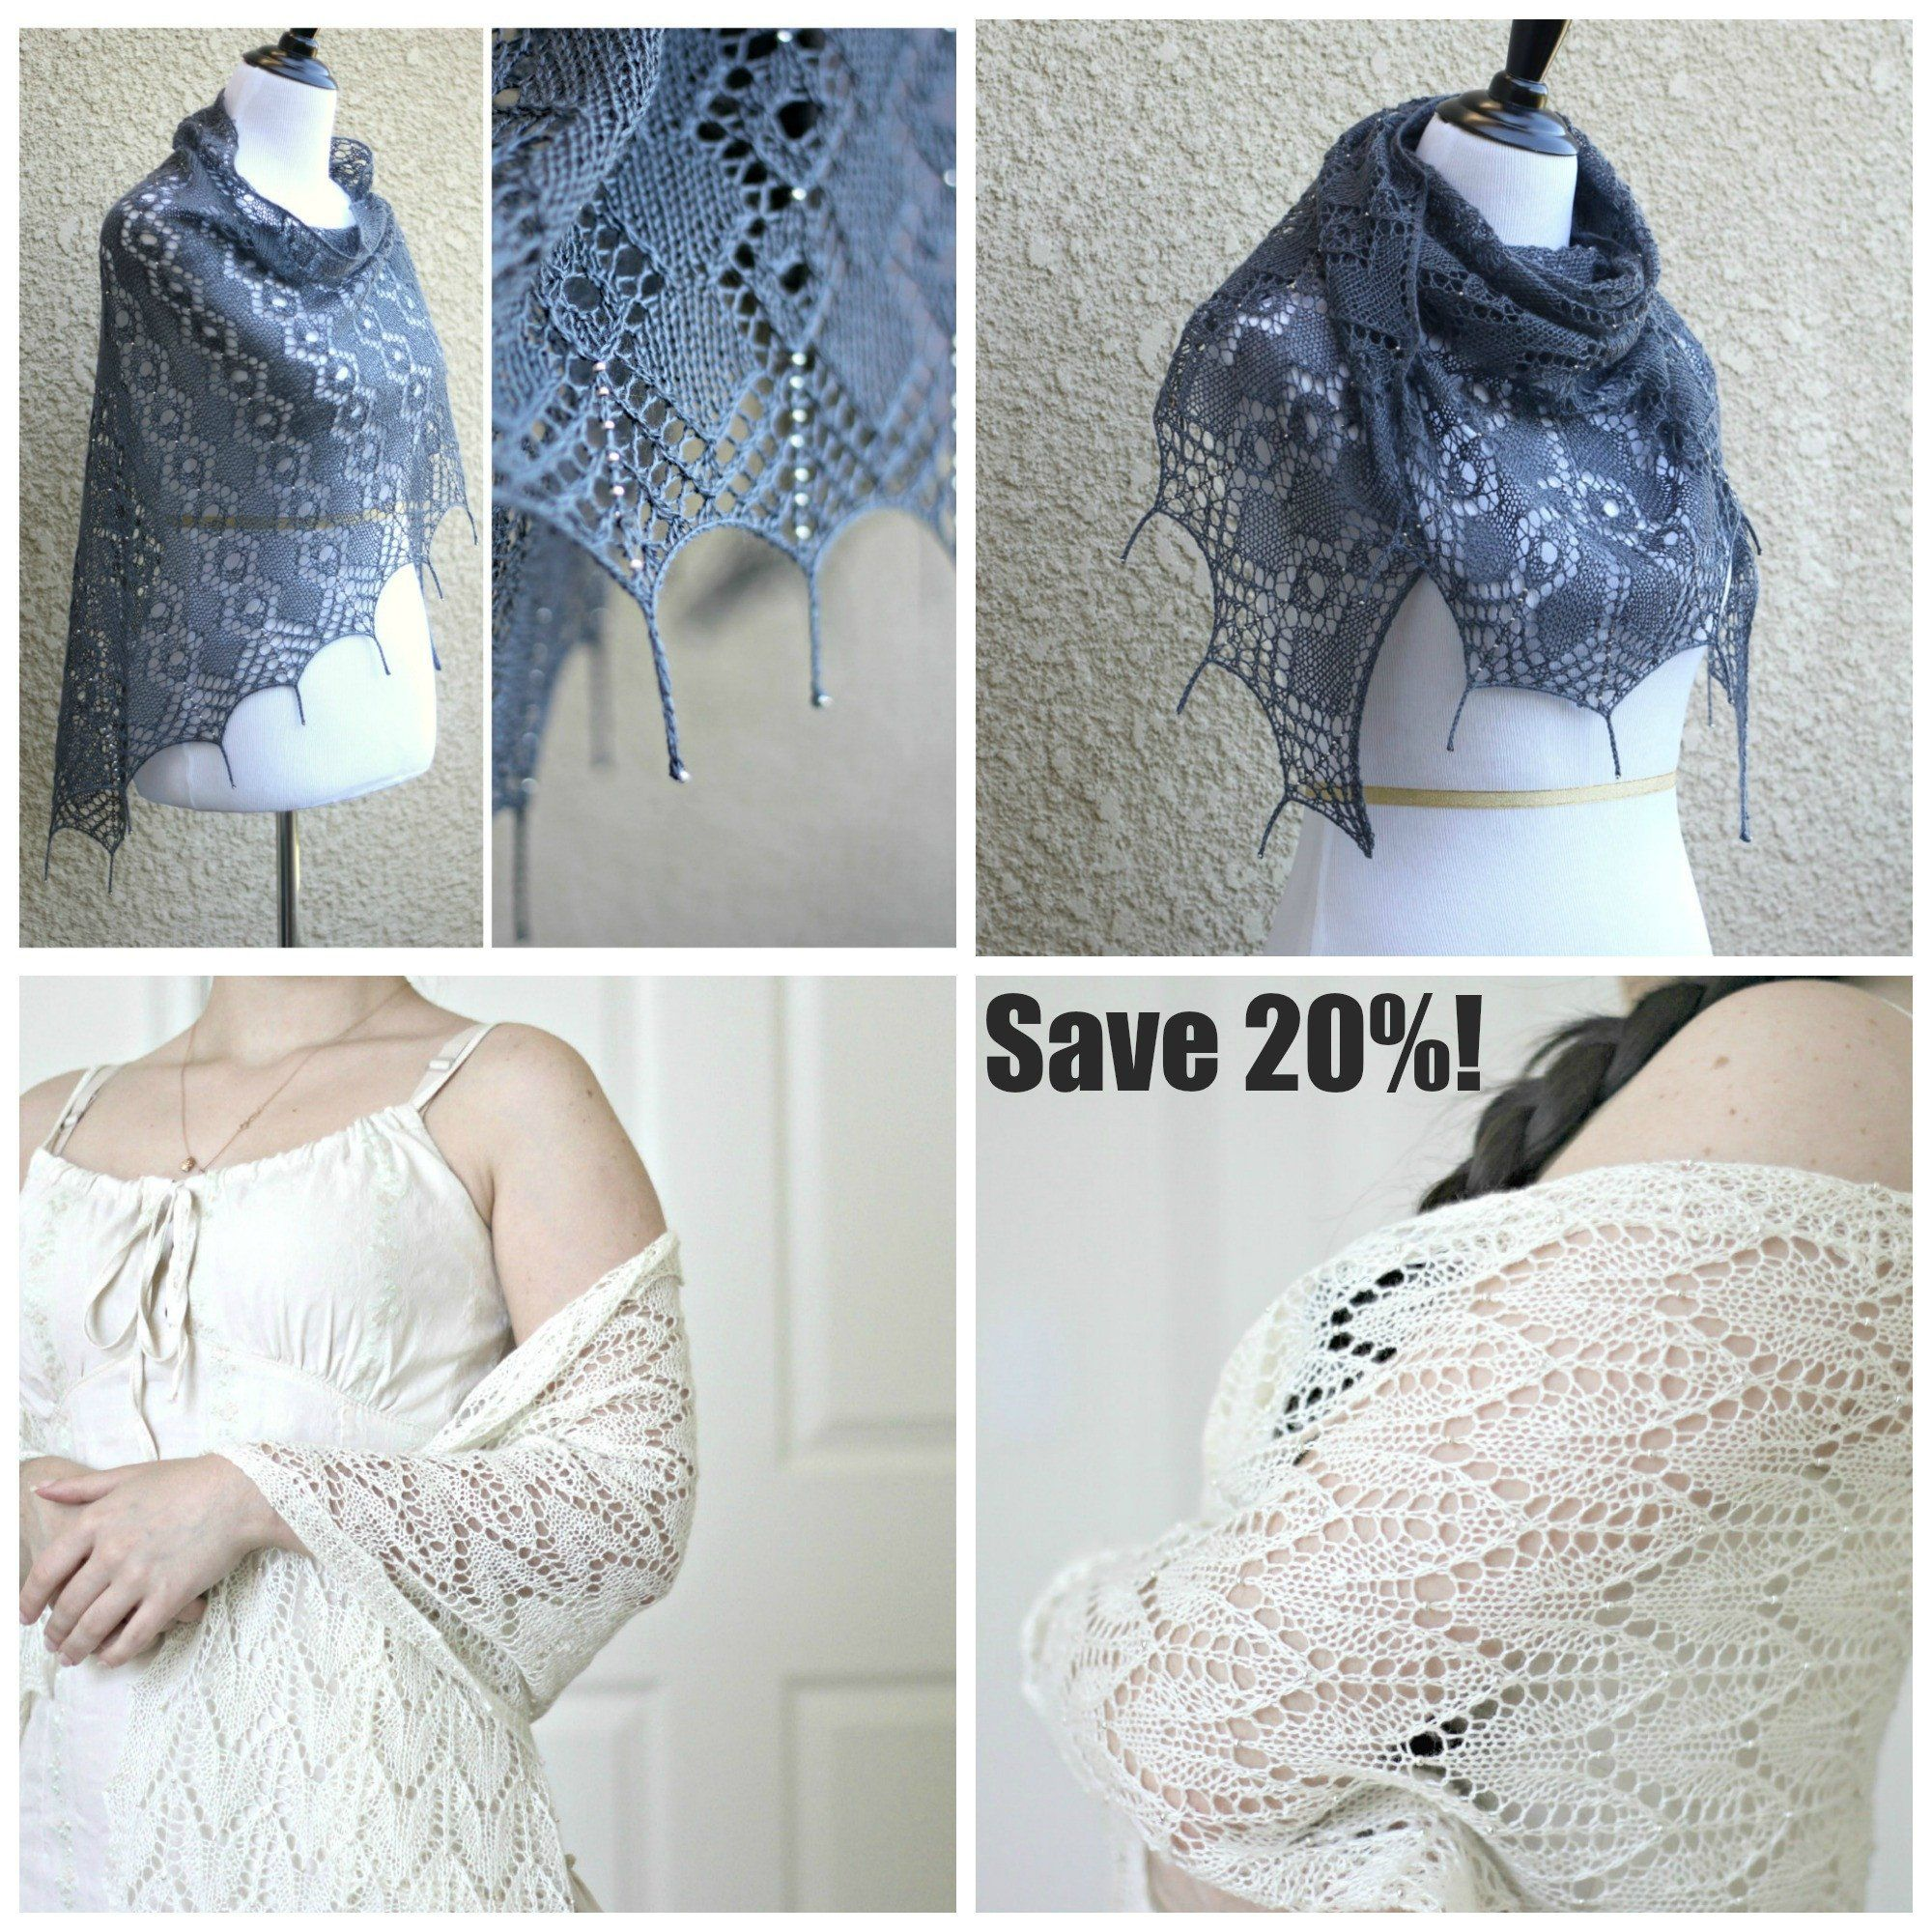 Knit Shawl Patternthis Bundle Consists Of Two Separate Patterns For